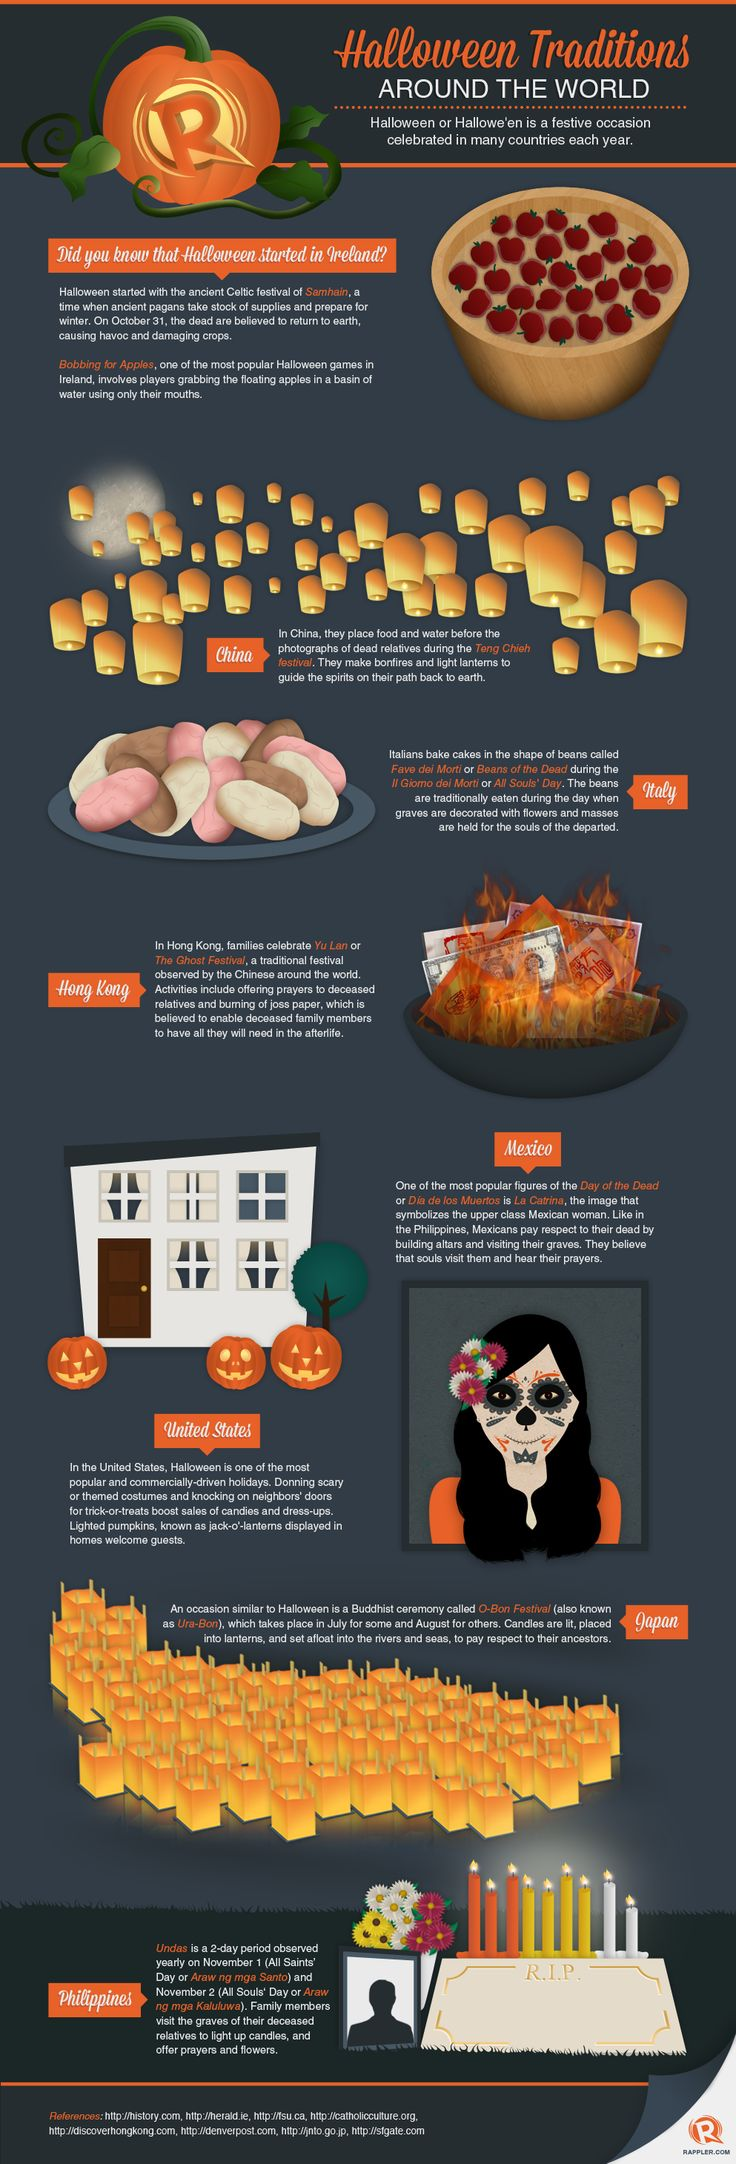 how is halloween celebrated across the world check out this infographic and find out about halloween traditions pinned by the mystics emporium on etsy - Best Halloween Celebrations